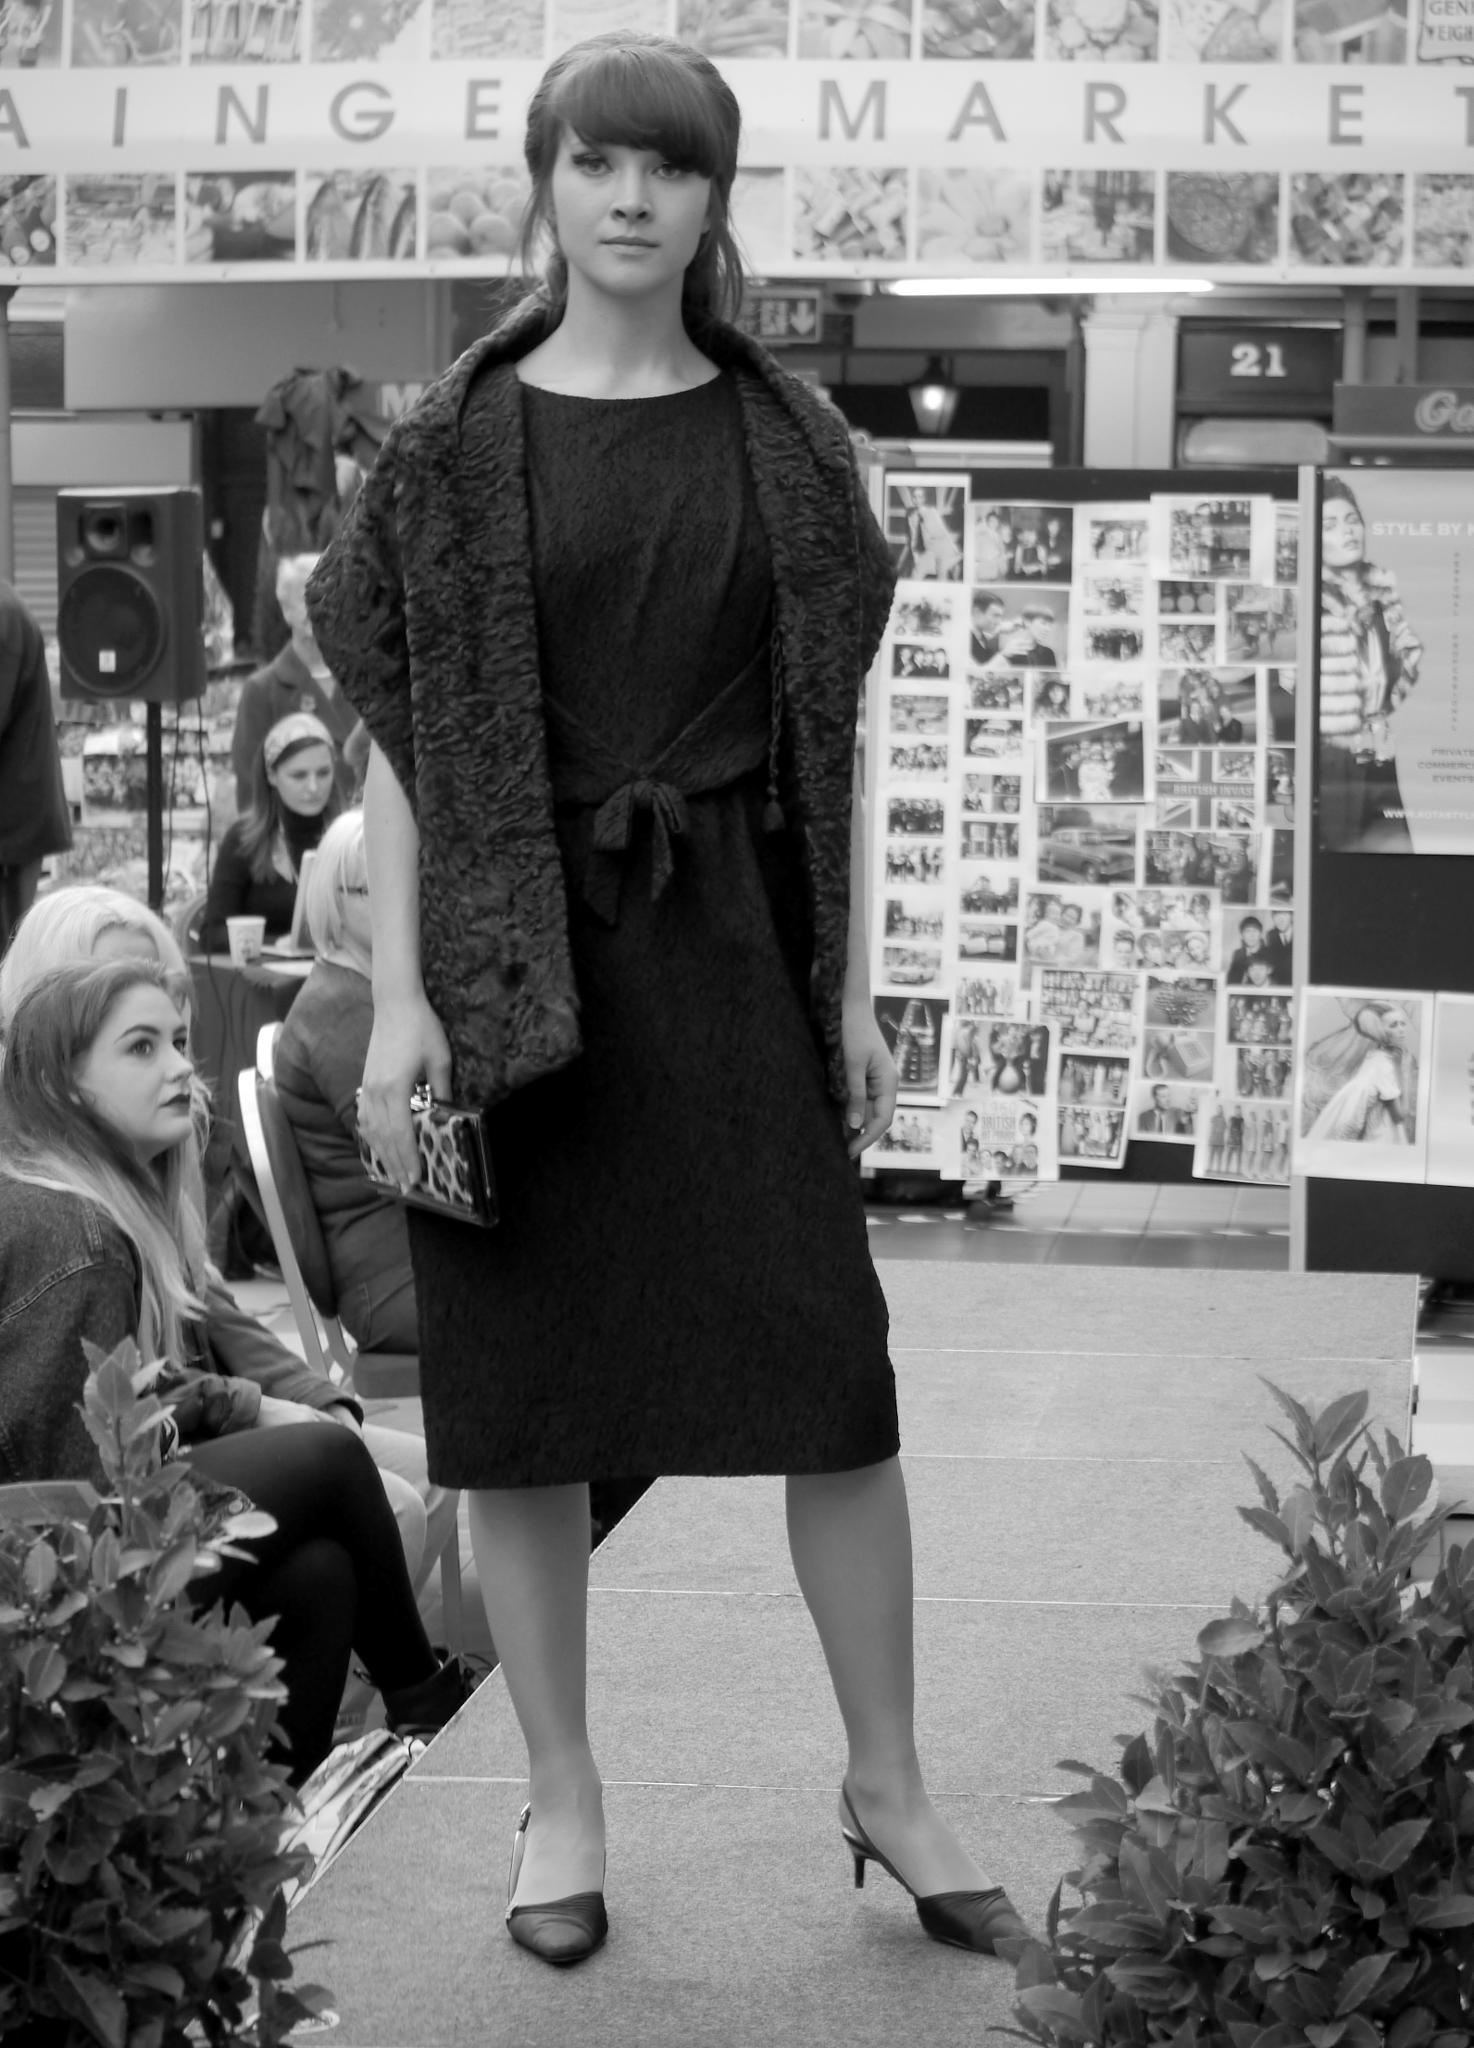 1960's Style Catwalk Show Grainger Market Newcastle. by Darren Turner